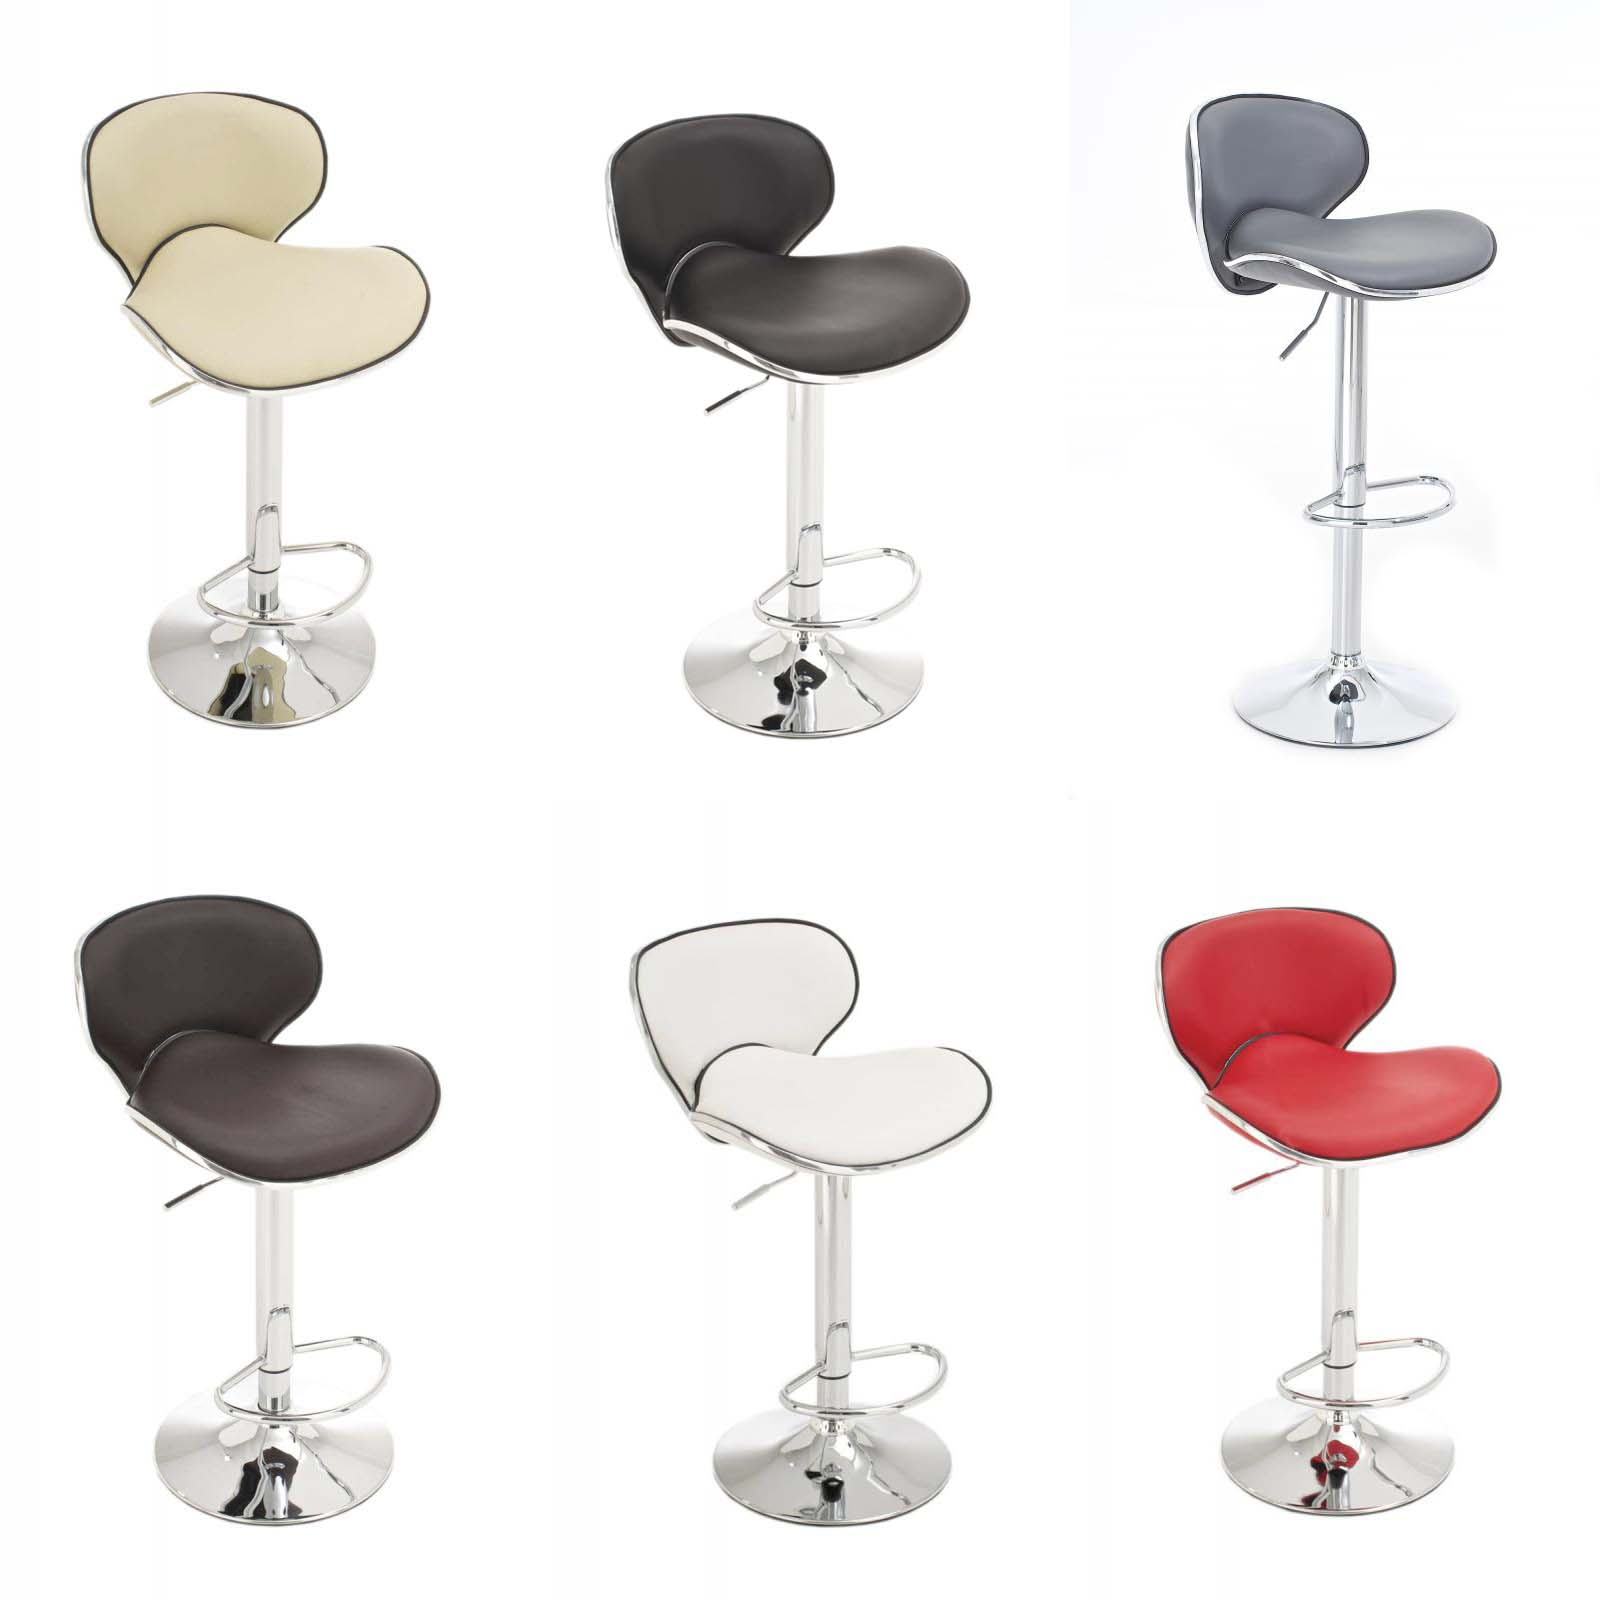 tabouret de bar las vegas chaise fauteuil cuisine am ricaine couleurs diverses ebay. Black Bedroom Furniture Sets. Home Design Ideas